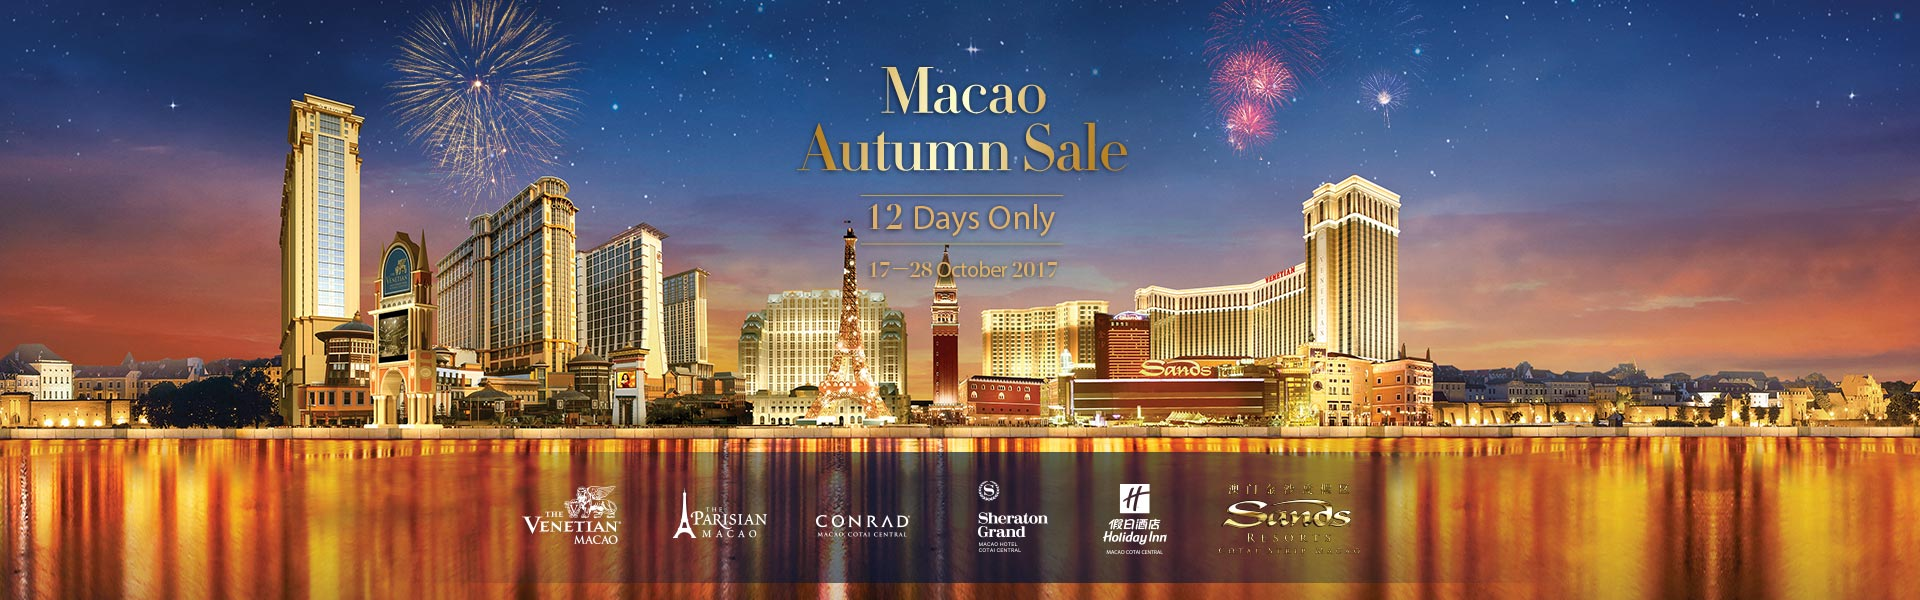 Macau Autumn Sale